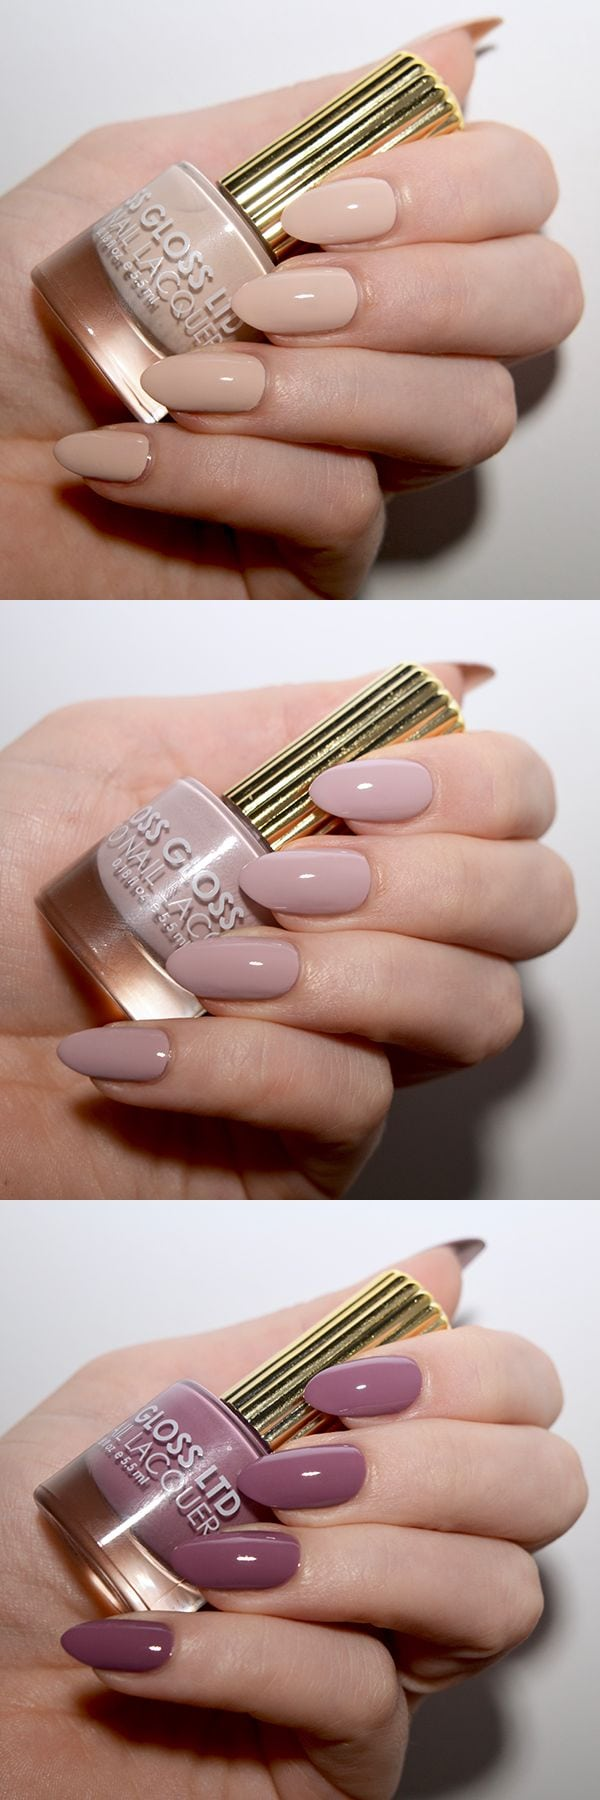 Floss Gloss nail varnishes – perfect manicure colours for spring!